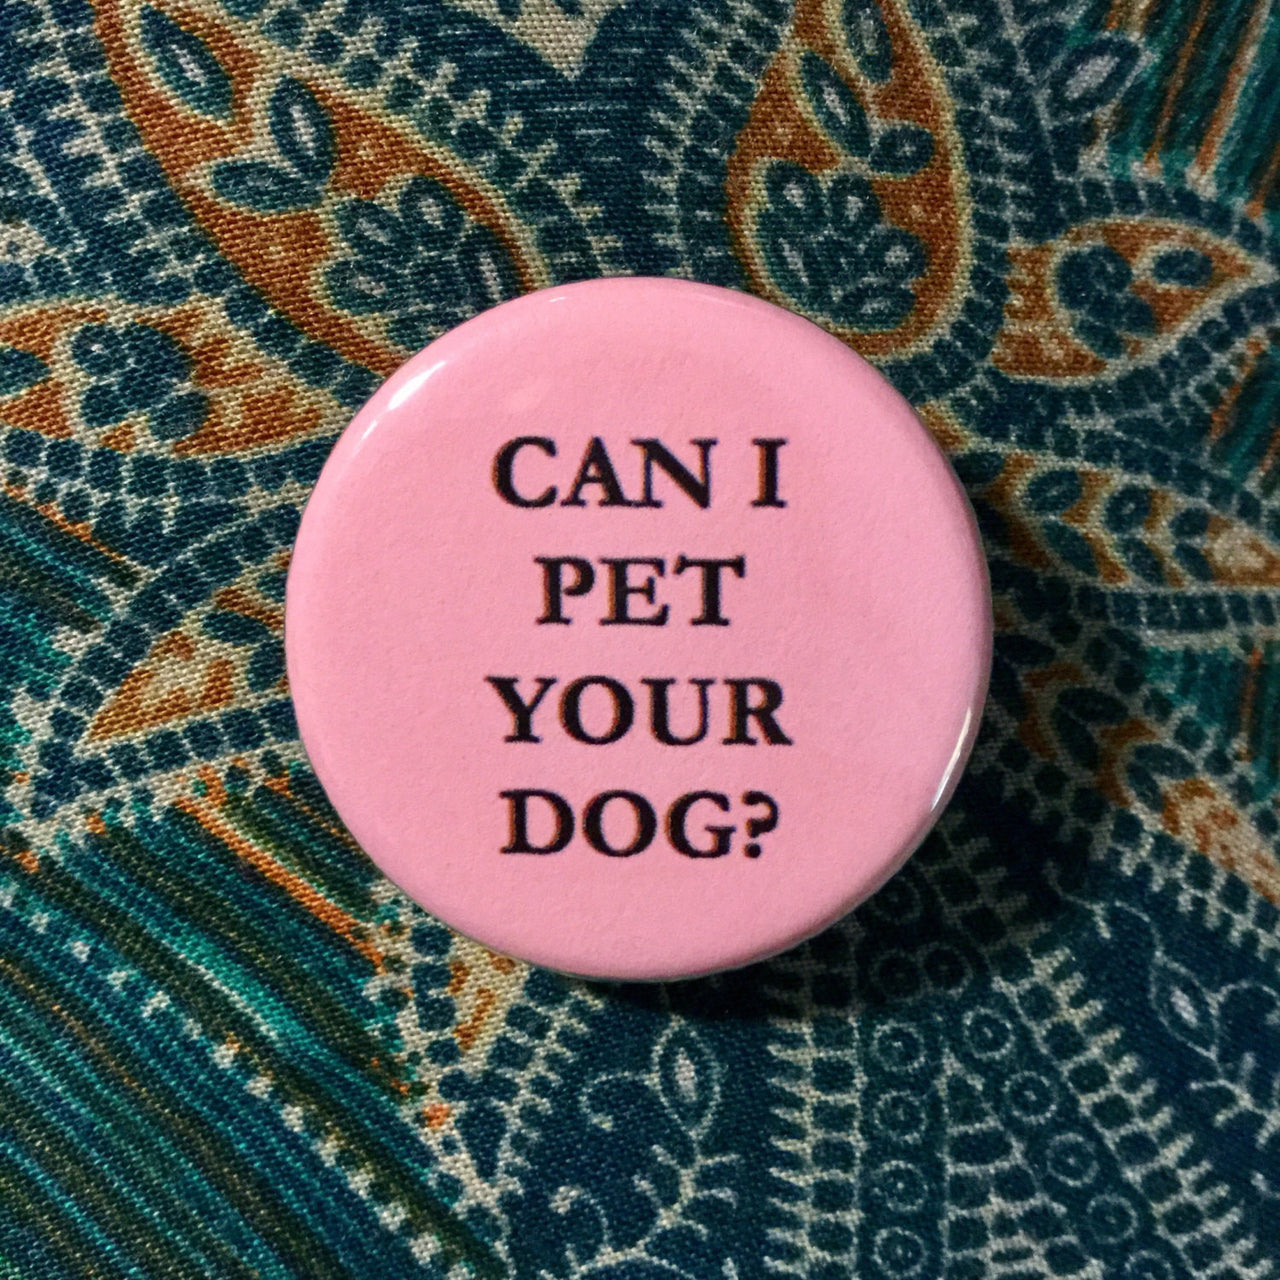 Can I pet your dog? / Dog lover button - Radical Buttons